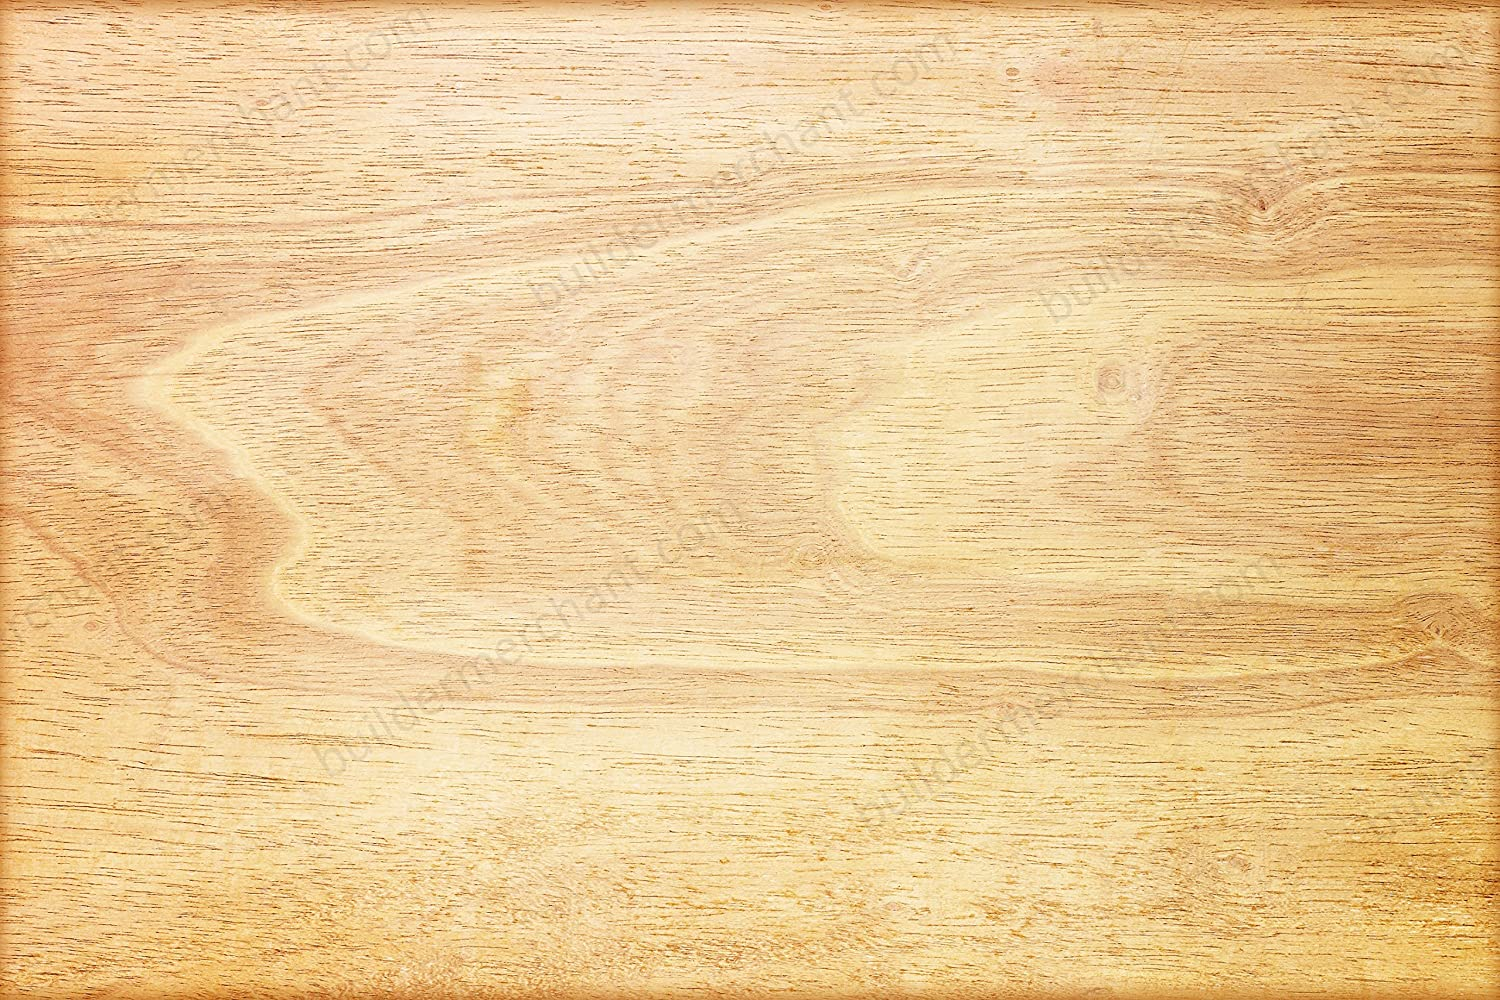 Marine Plywood BS1088 610mm x 300mm 2x1ft Thickness: 6mm